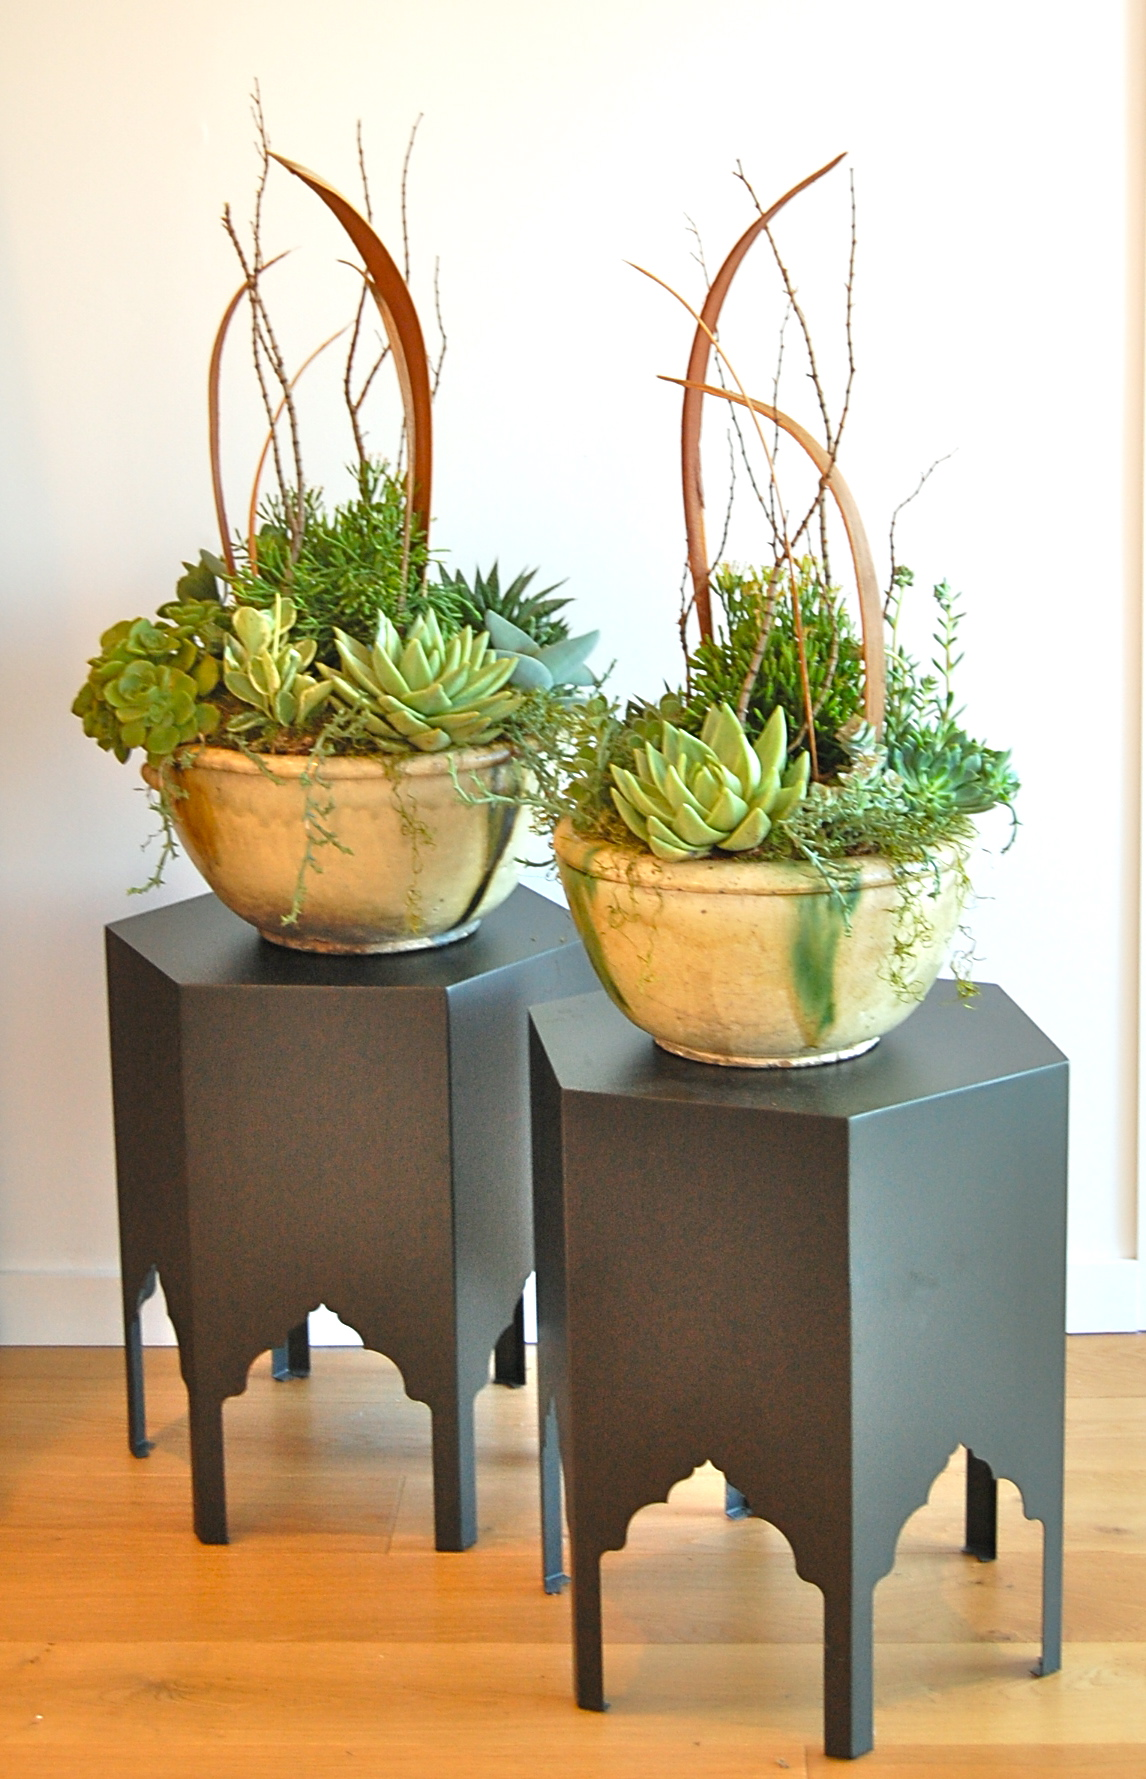 CUSTOM PLANTING IN ANTIQUE BOWLS IN CORTE MADERA, CA